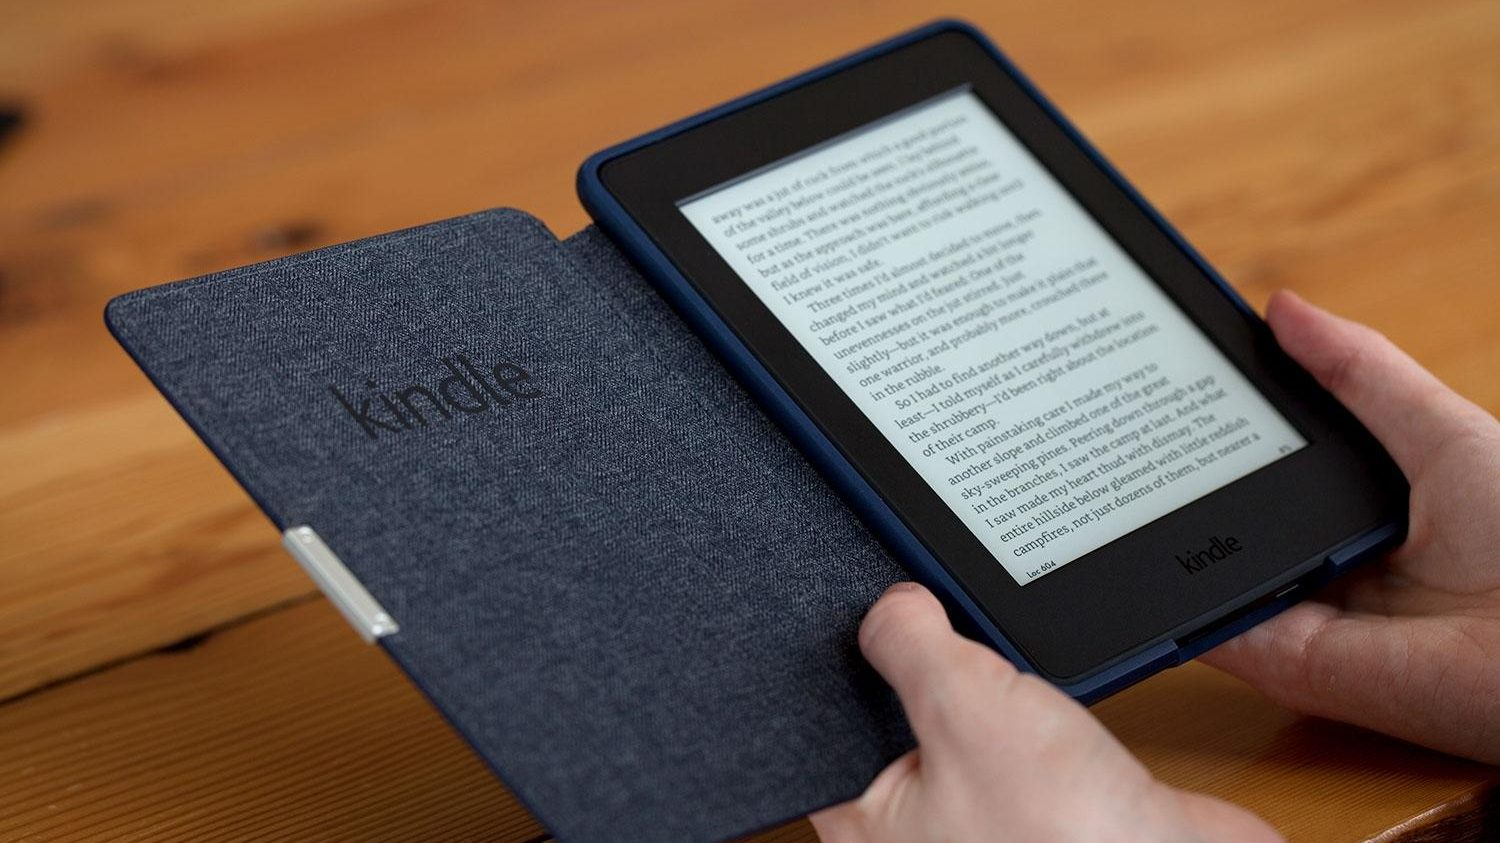 amazon kindle paperwhite 2015 in hand 1500x1000 e1518598314644